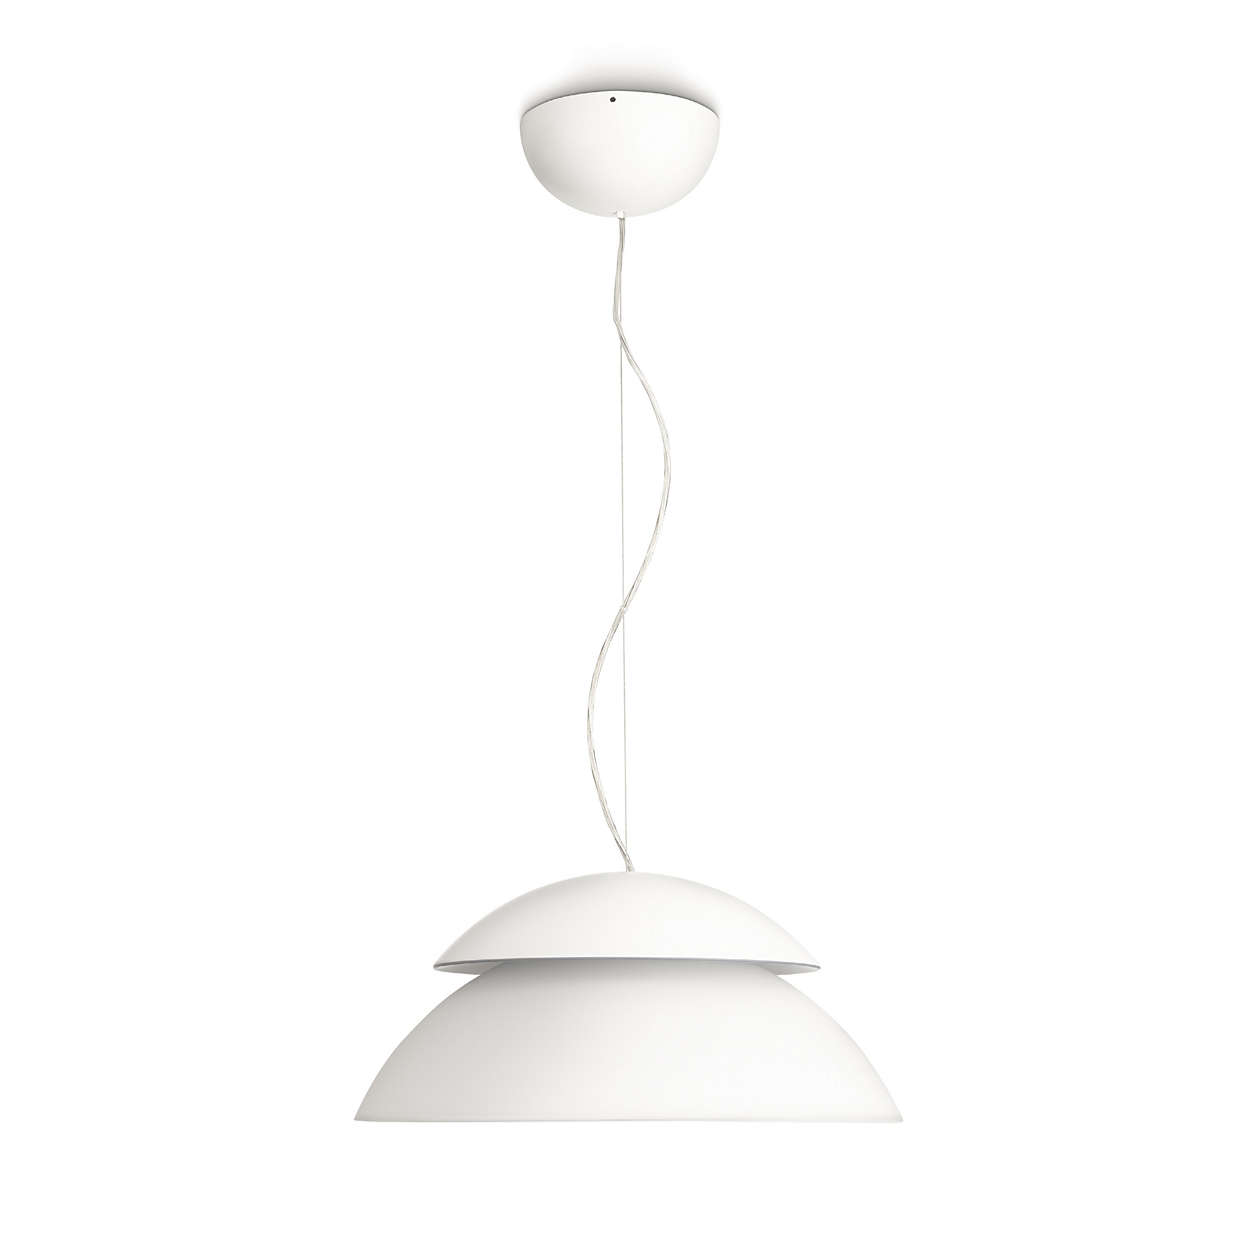 Hue white and color ambiance beyond suspension light 712003148 philips limitless possibilites aloadofball Images